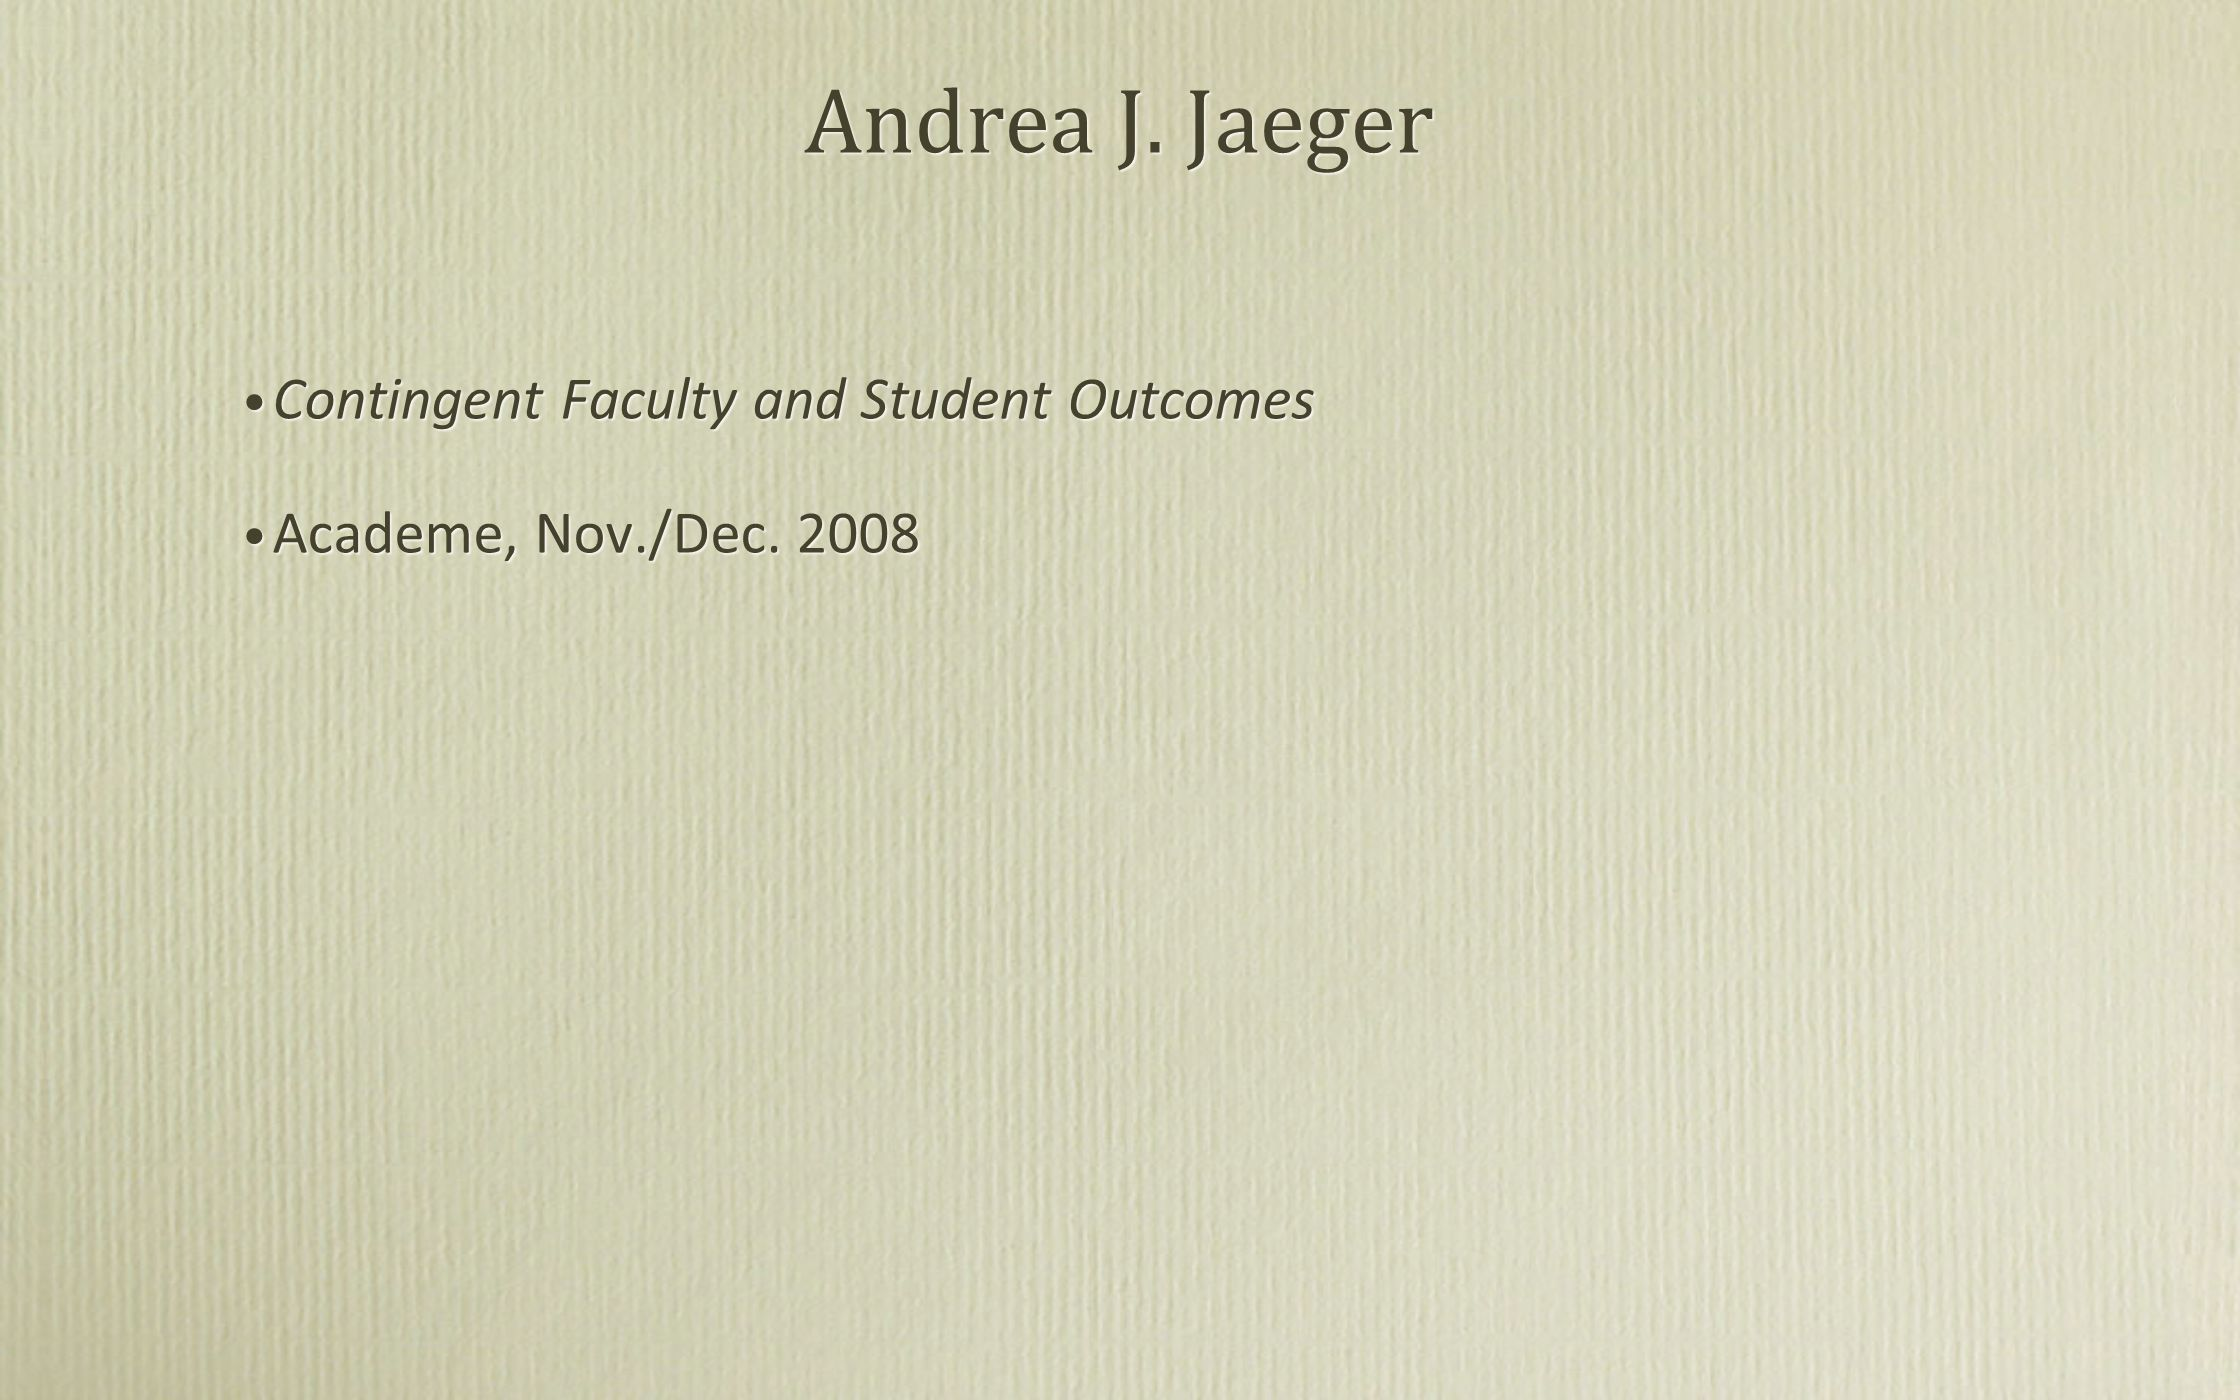 Andrea J. Jaeger Contingent Faculty and Student Outcomes Academe, Nov./Dec. 2008 Contingent Faculty and Student Outcomes Academe, Nov./Dec. 2008